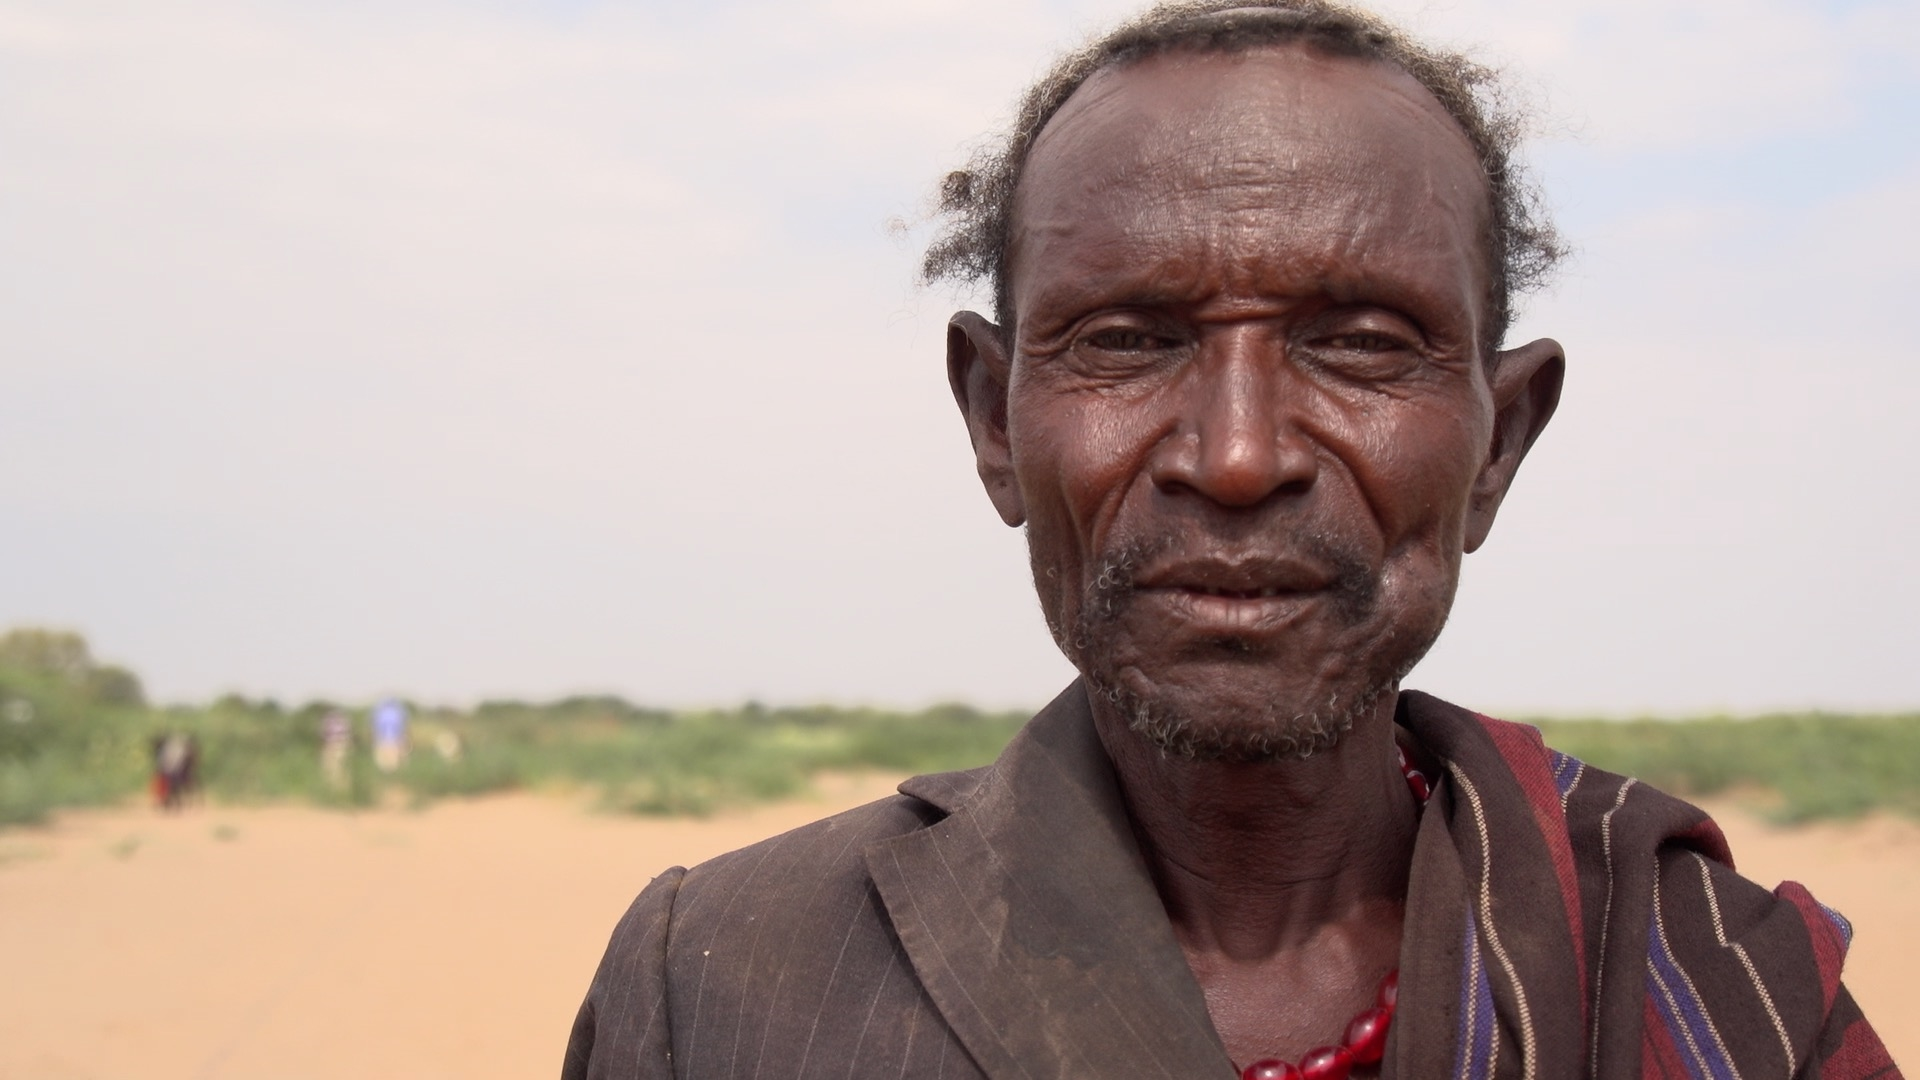 A local Turkana tribesman speaks with us about our project.